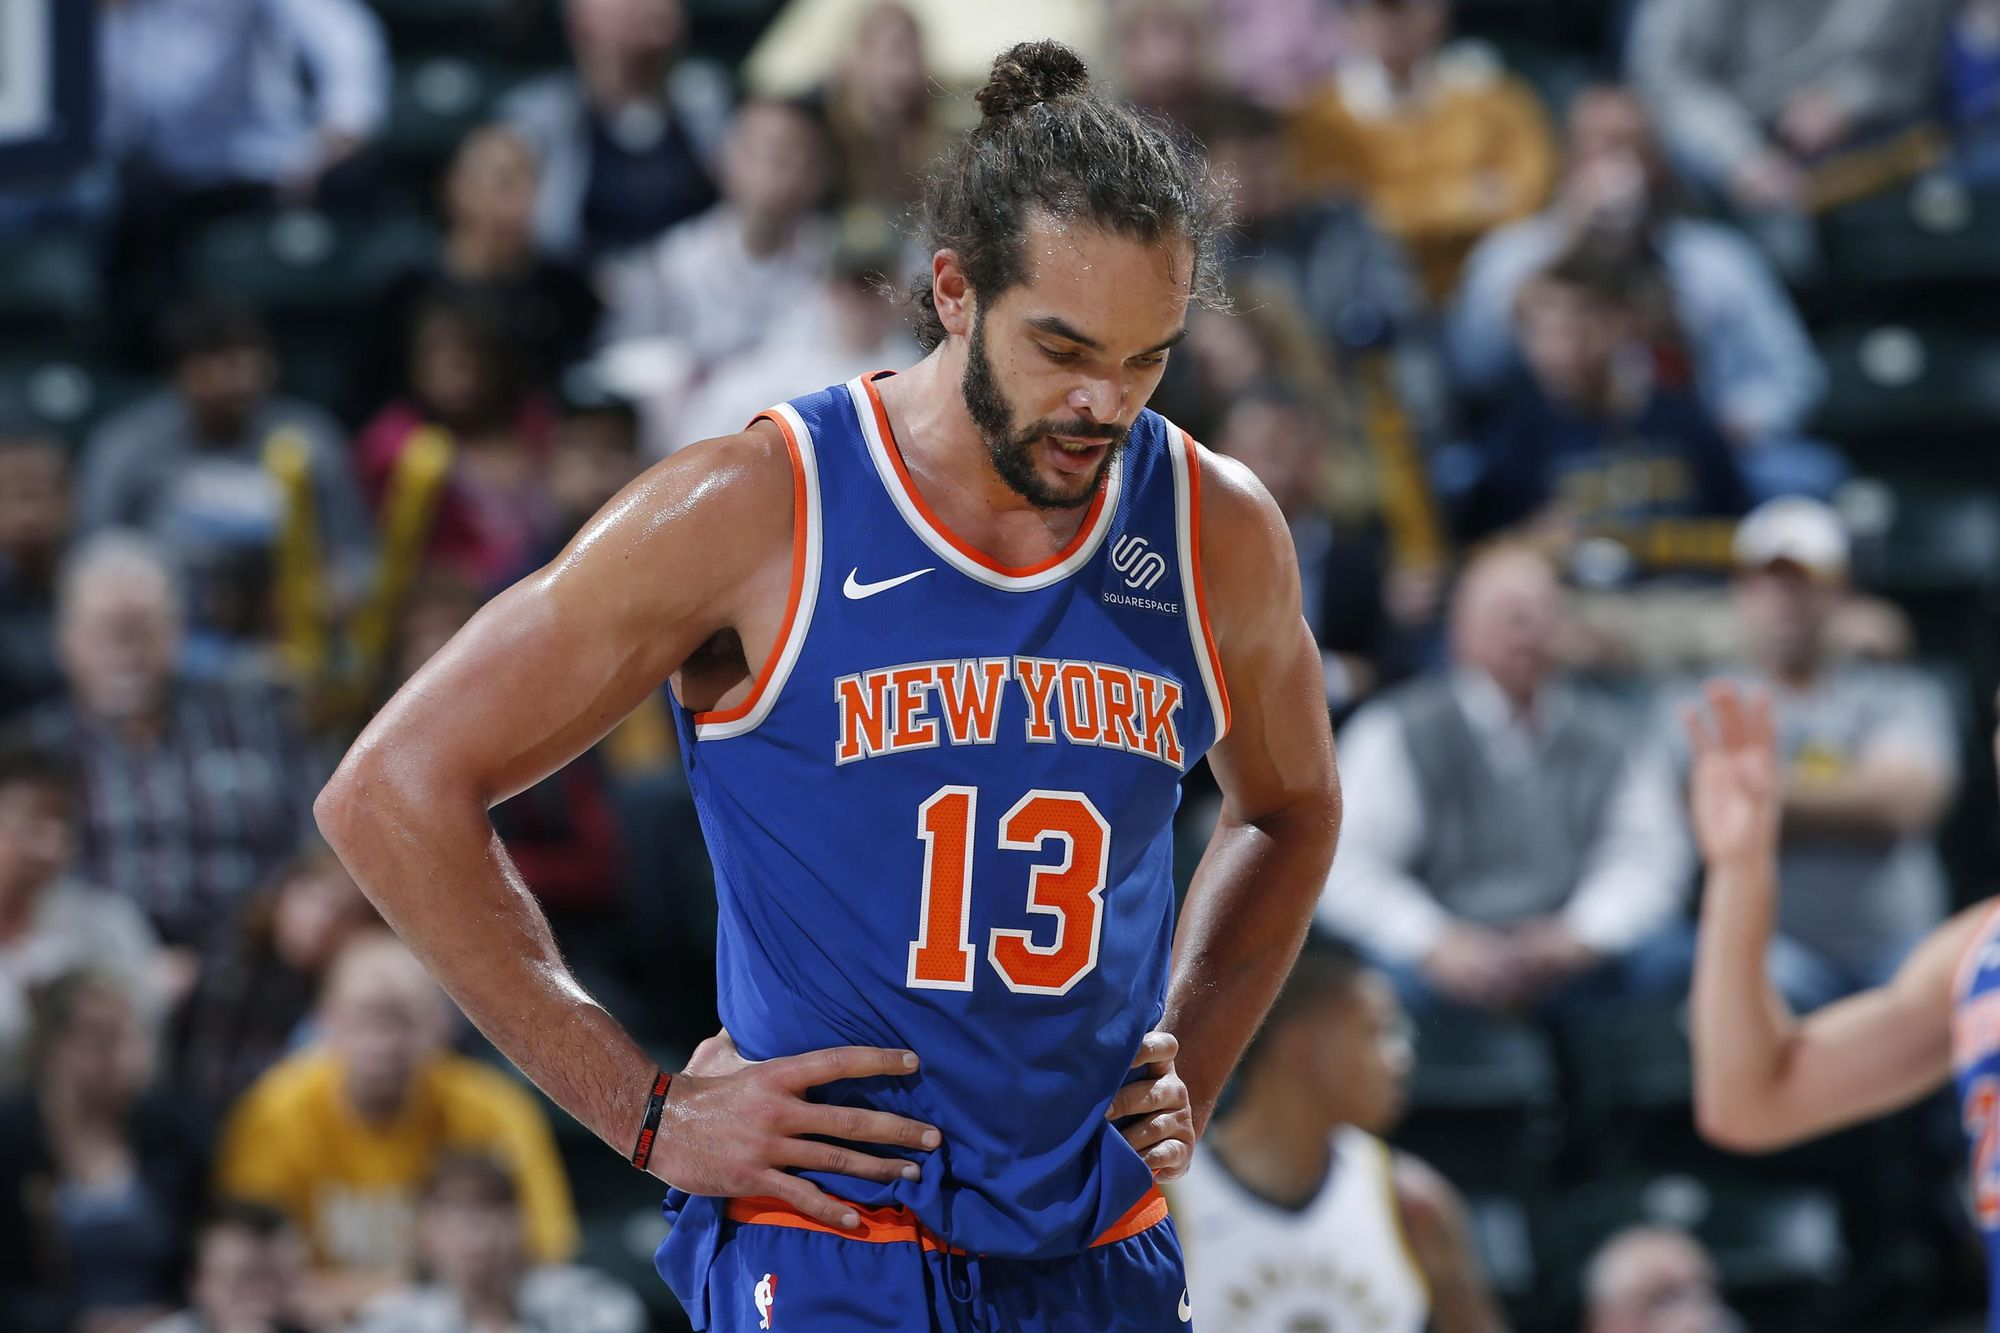 NBA Free Agency News: Joakim Noah Leads Best Available Big Men Free Agents